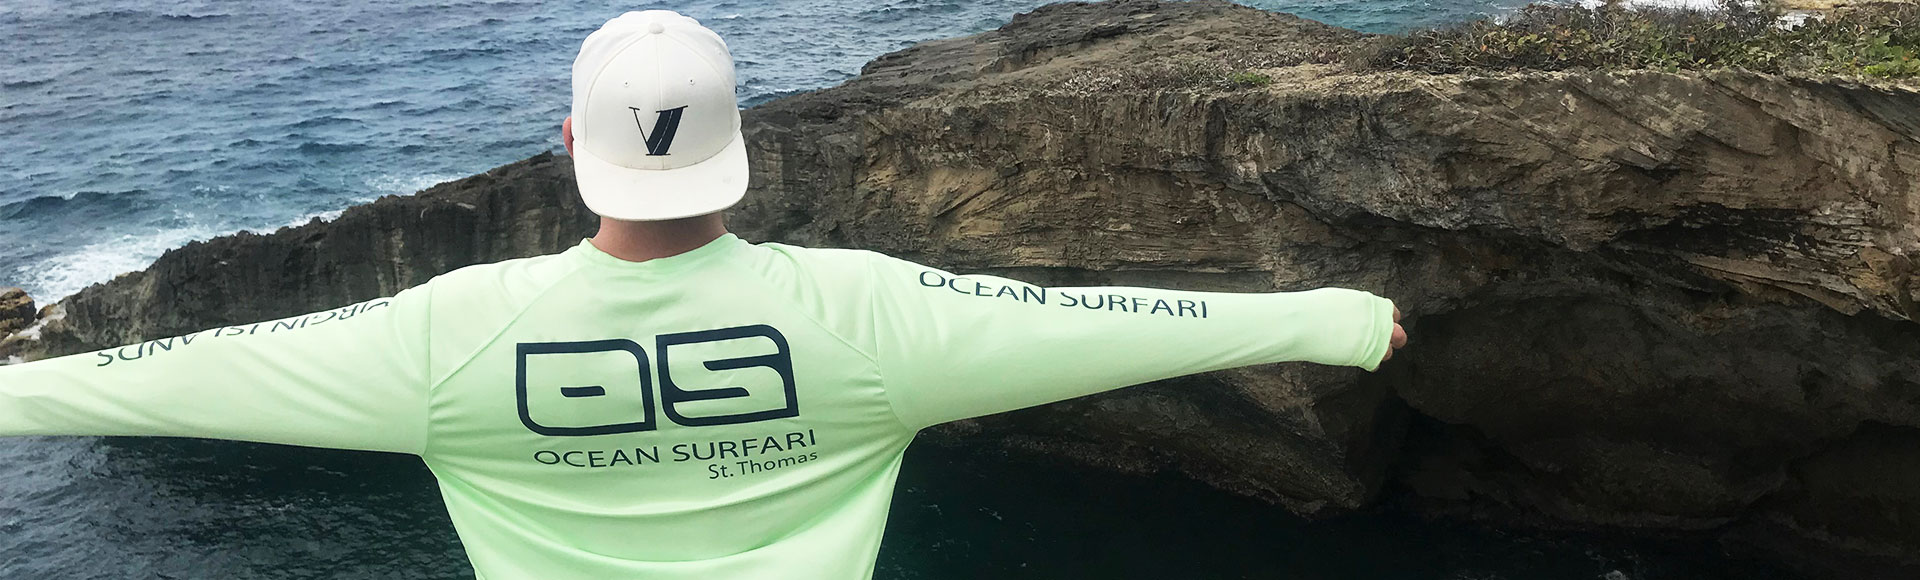 Ocean Surfari Online Store - Get the Gear